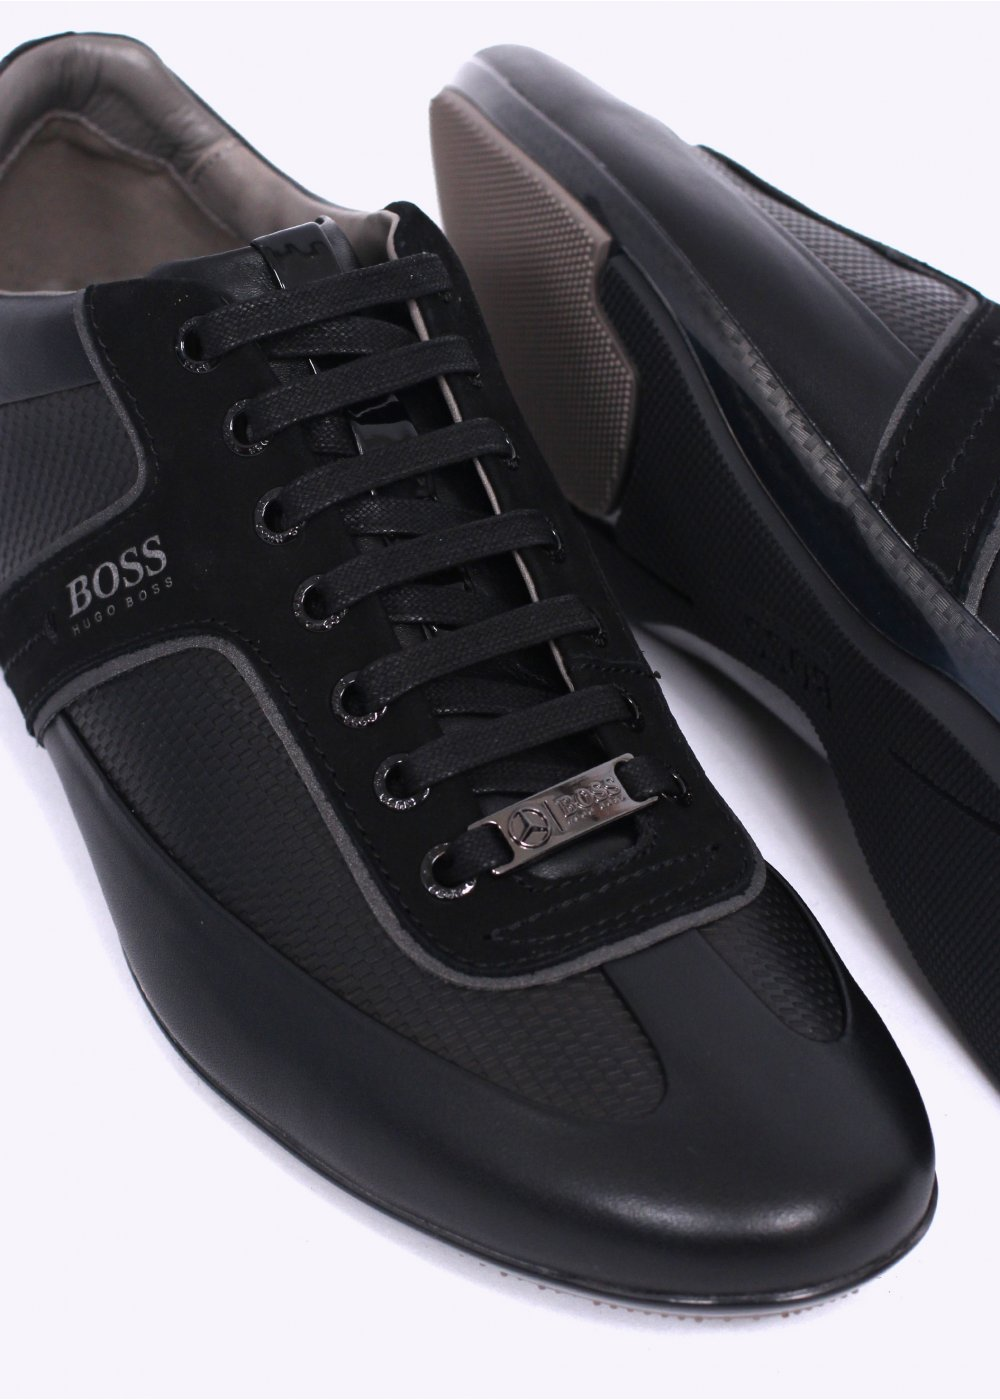 hugo boss sneakers canada. Black Bedroom Furniture Sets. Home Design Ideas